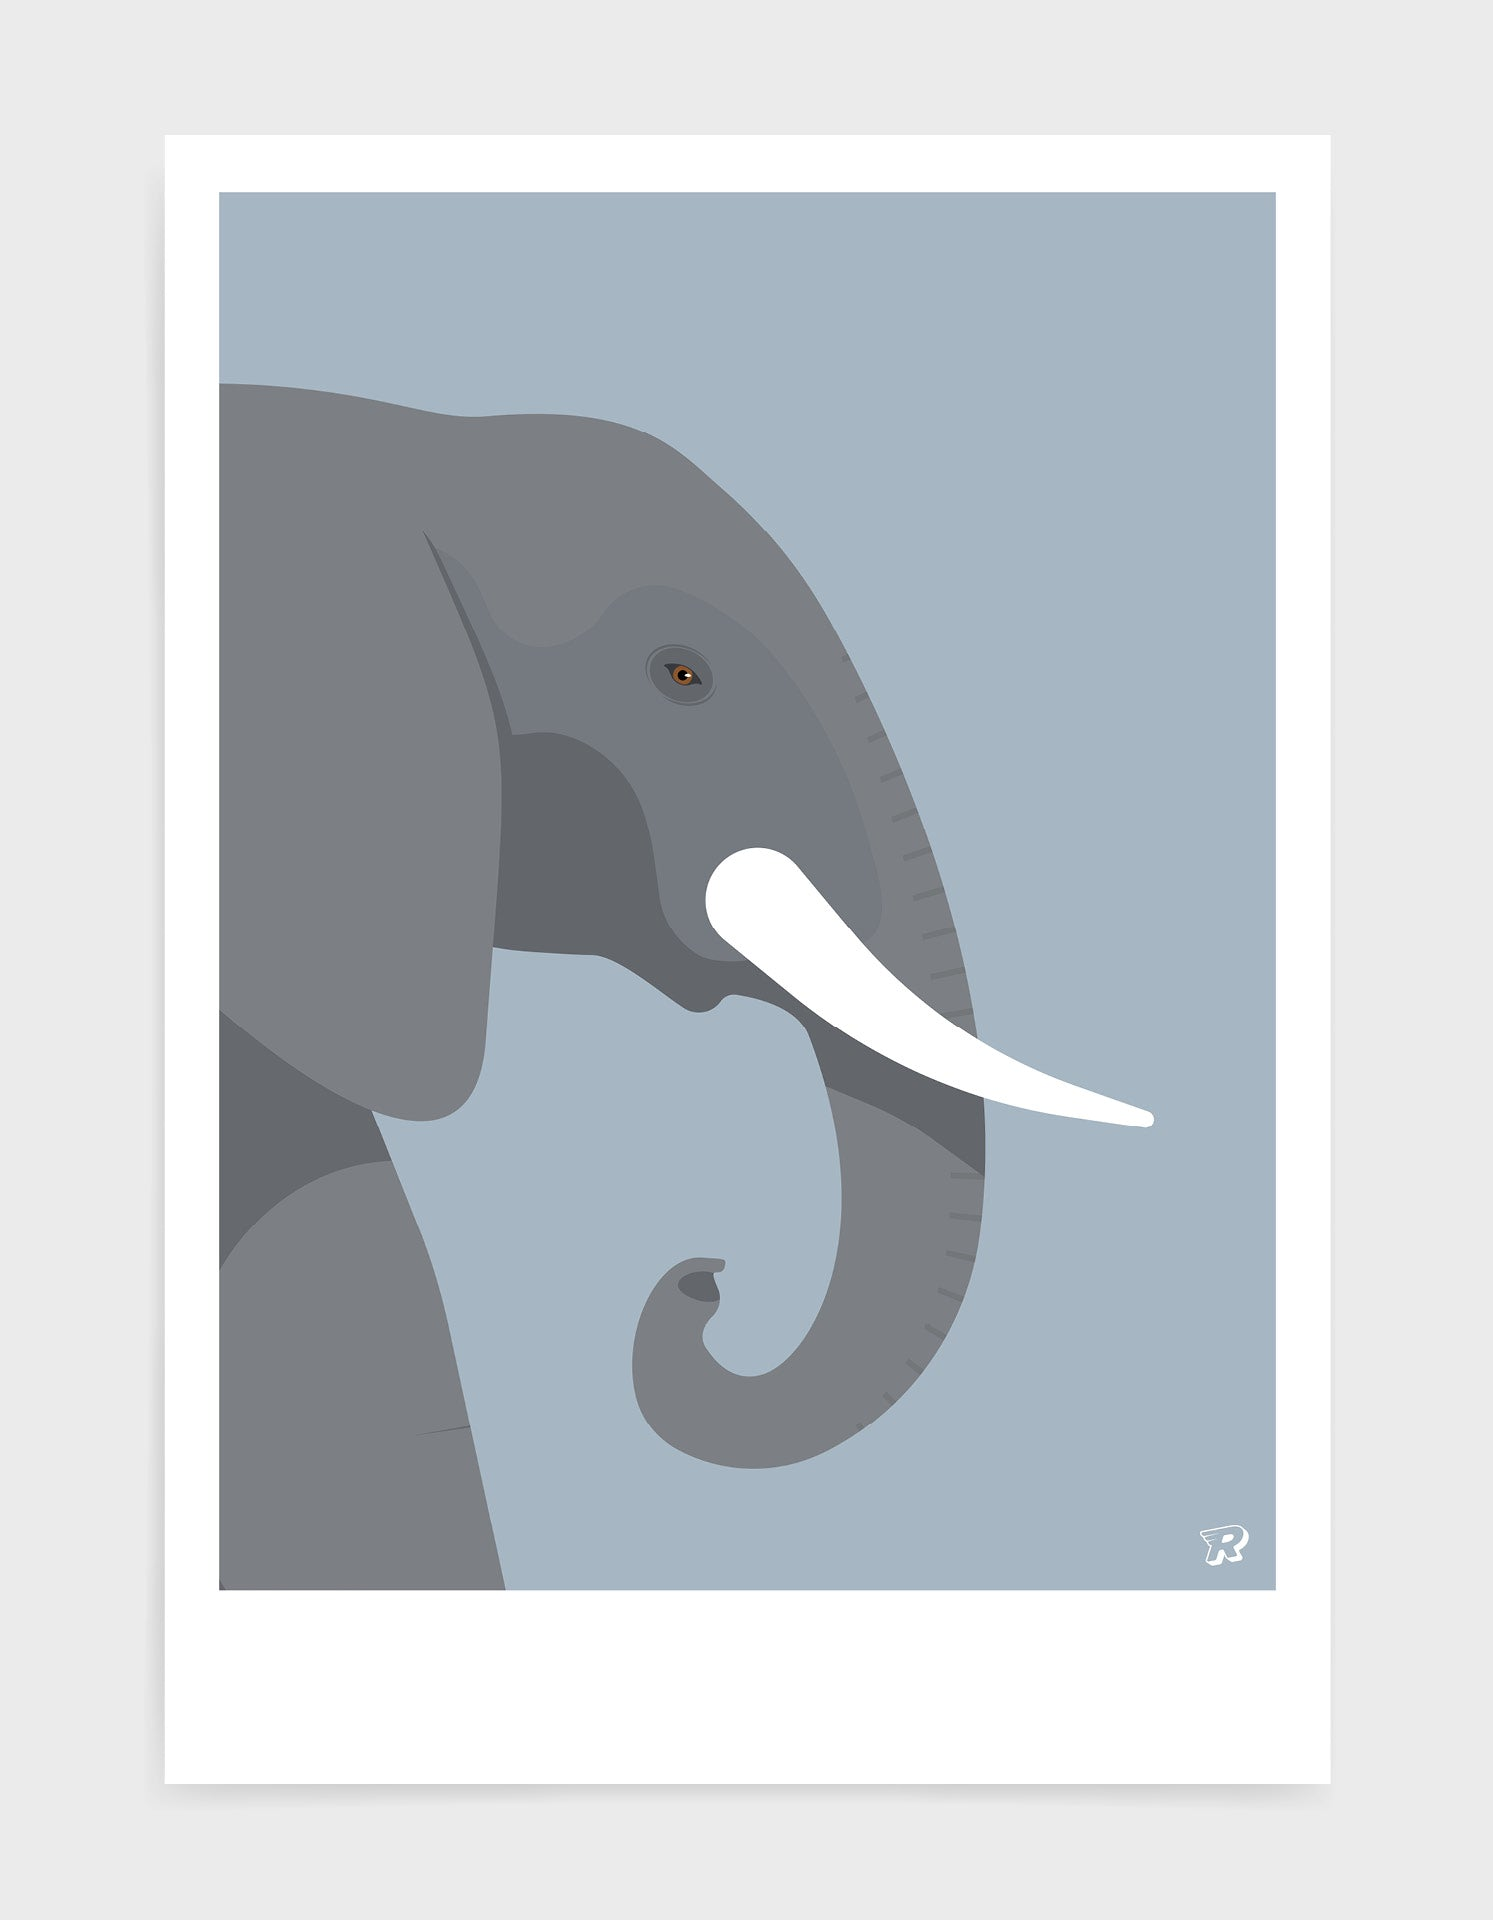 art print of an elephant in profile against a light grey background